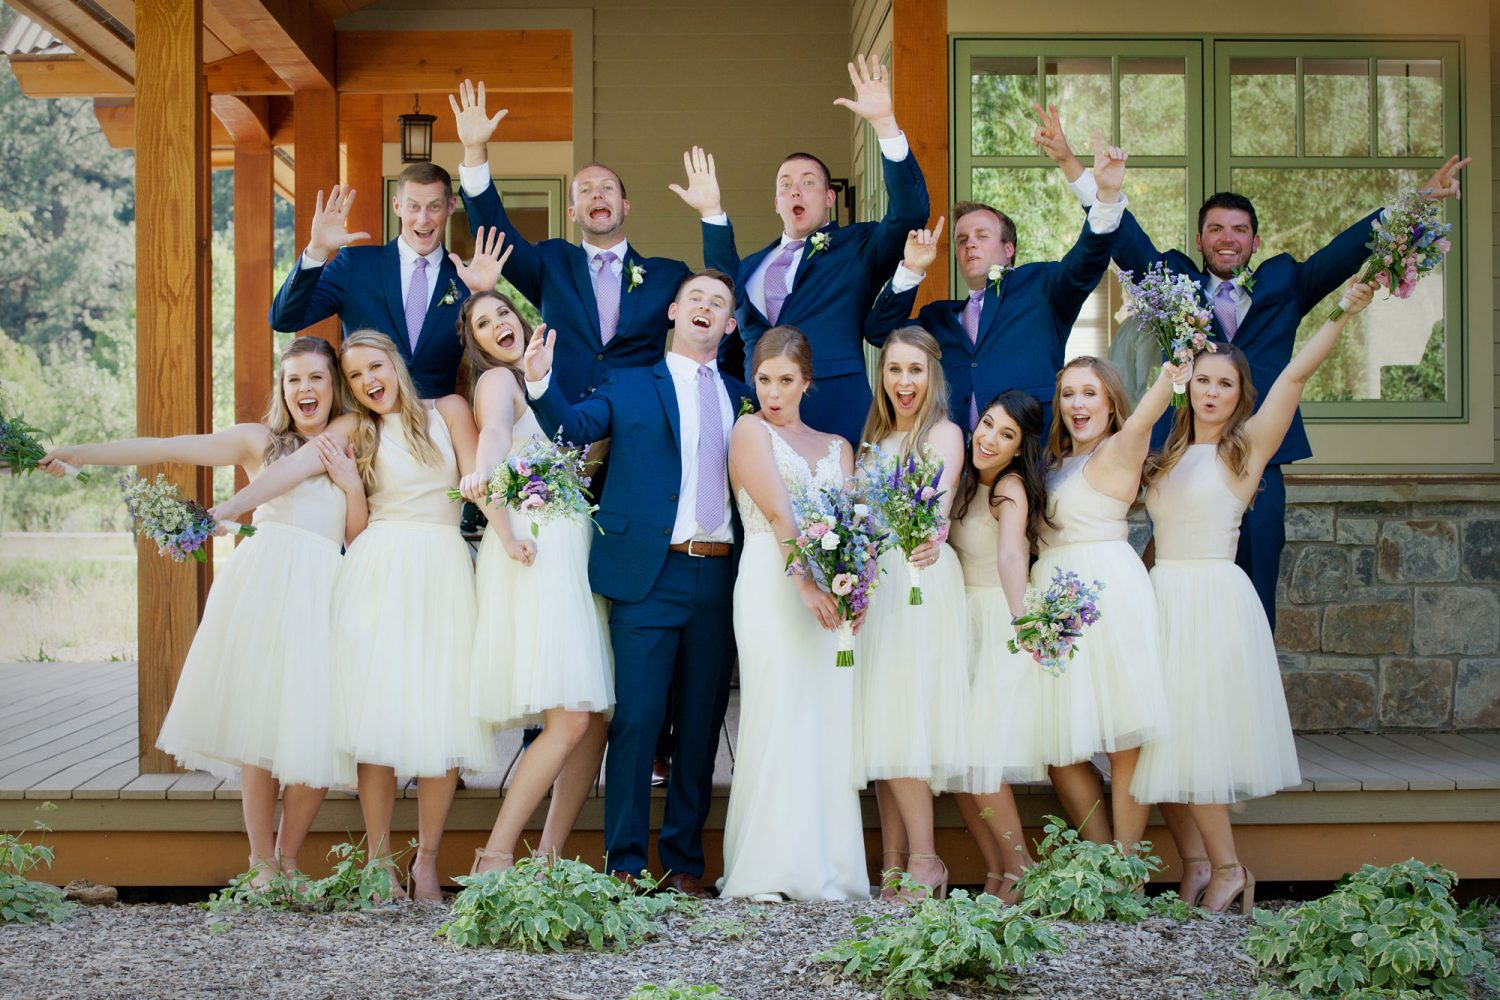 A happy wedding party from a backyard wedding in Durango, Colorado